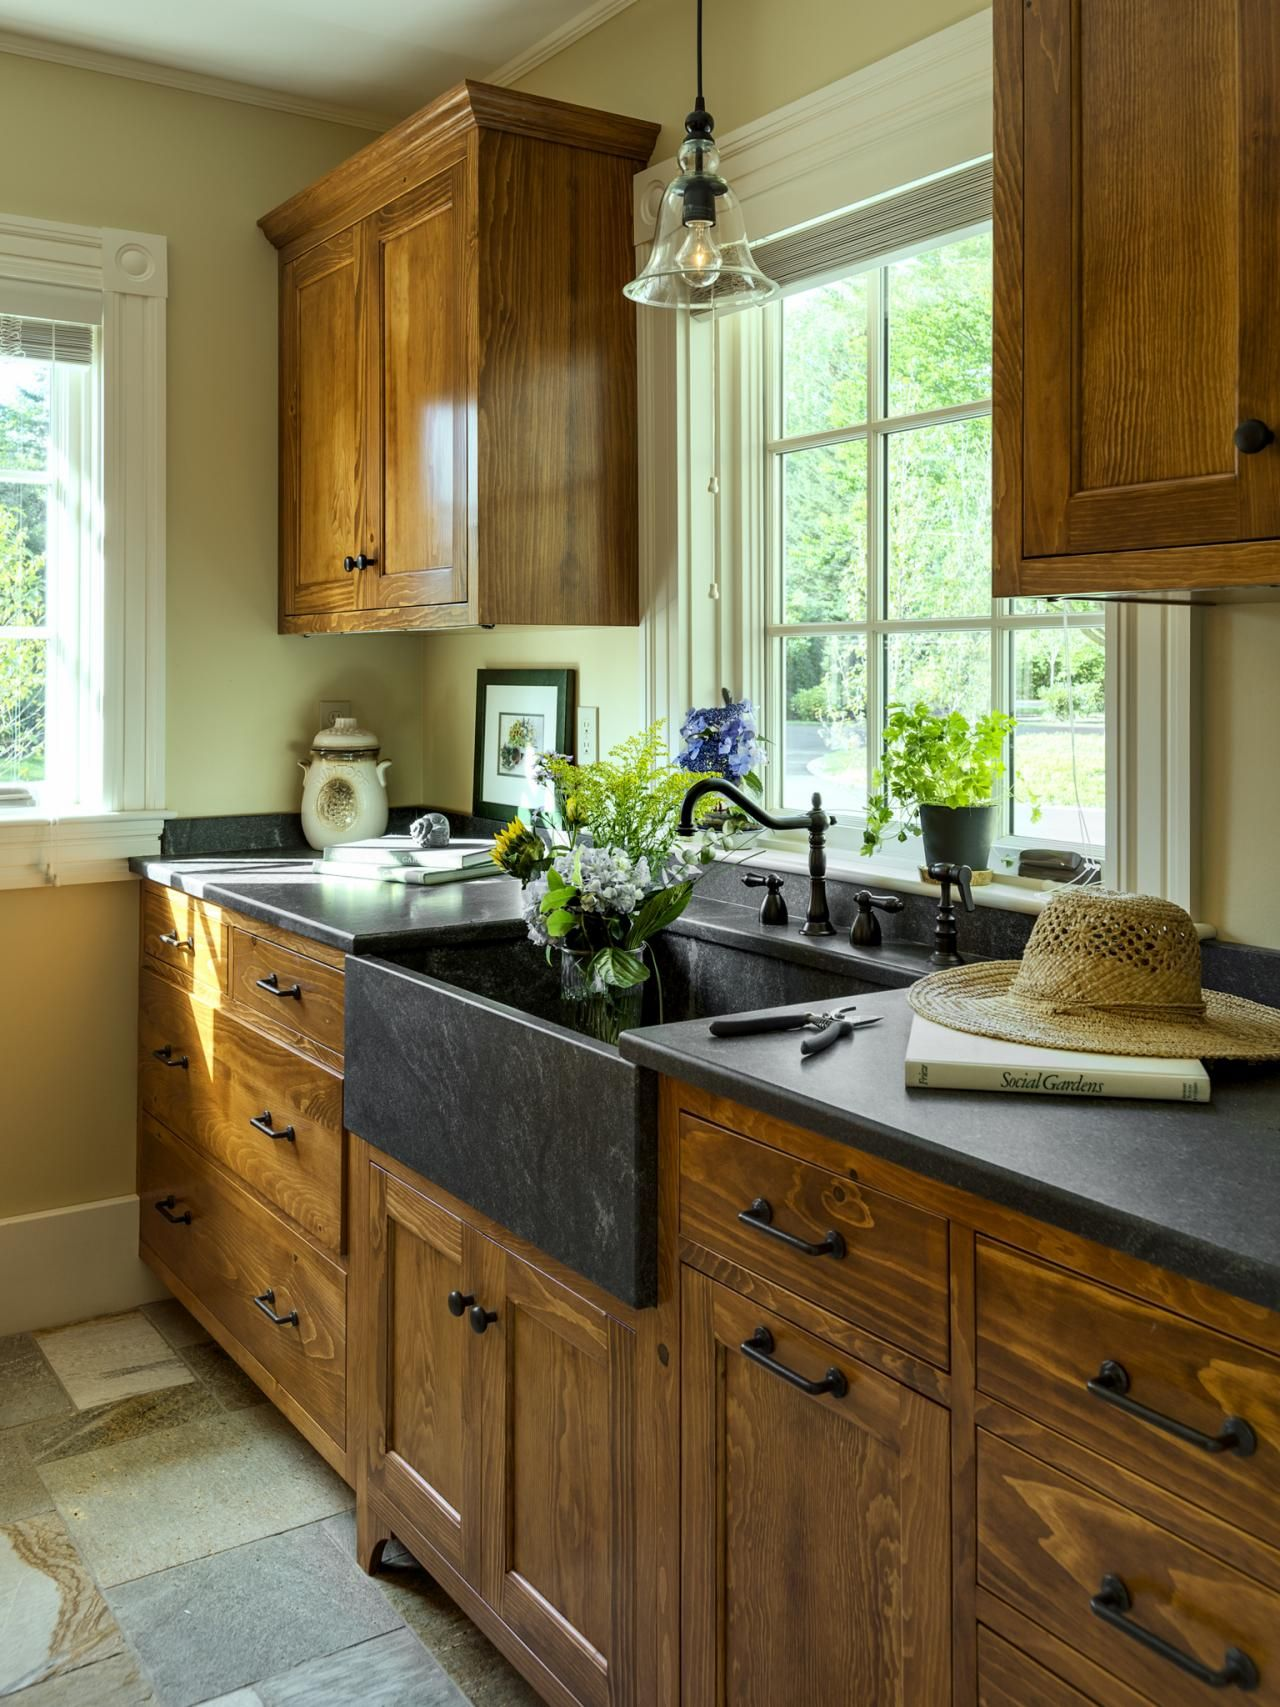 Top 50 pinterest gallery 2014 hgtv sinks and kitchens for Kitchen designs and more